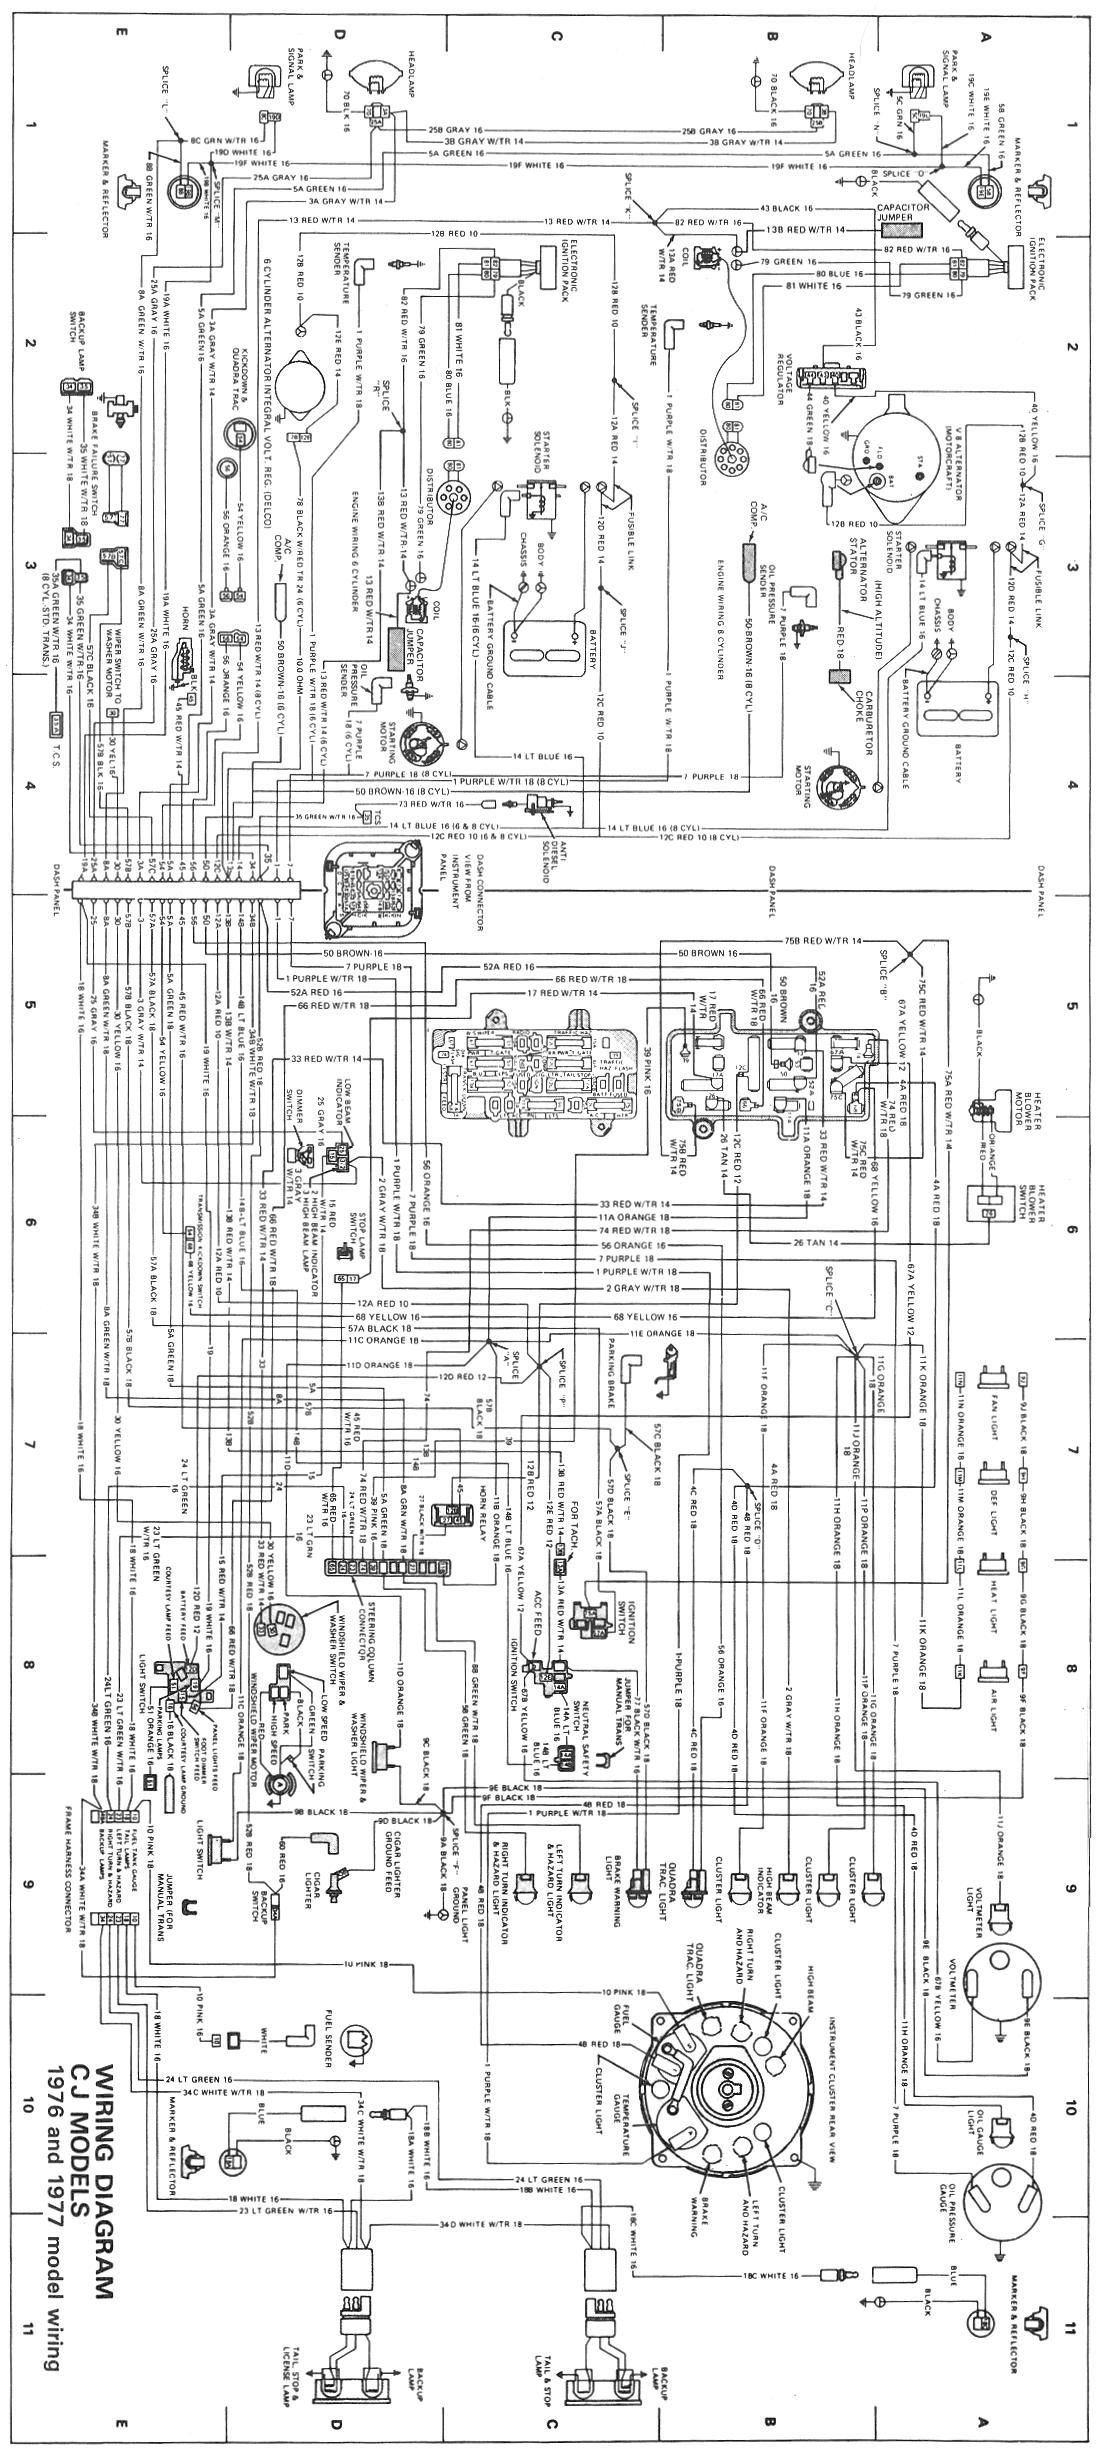 8d25ded6e3673519e155875e09844e5e cj wiring diagram 1976 1977 jpg 1,100�2,459 pixels 1976 jeep cj5 1983 jeep cj7 wiring diagram at n-0.co